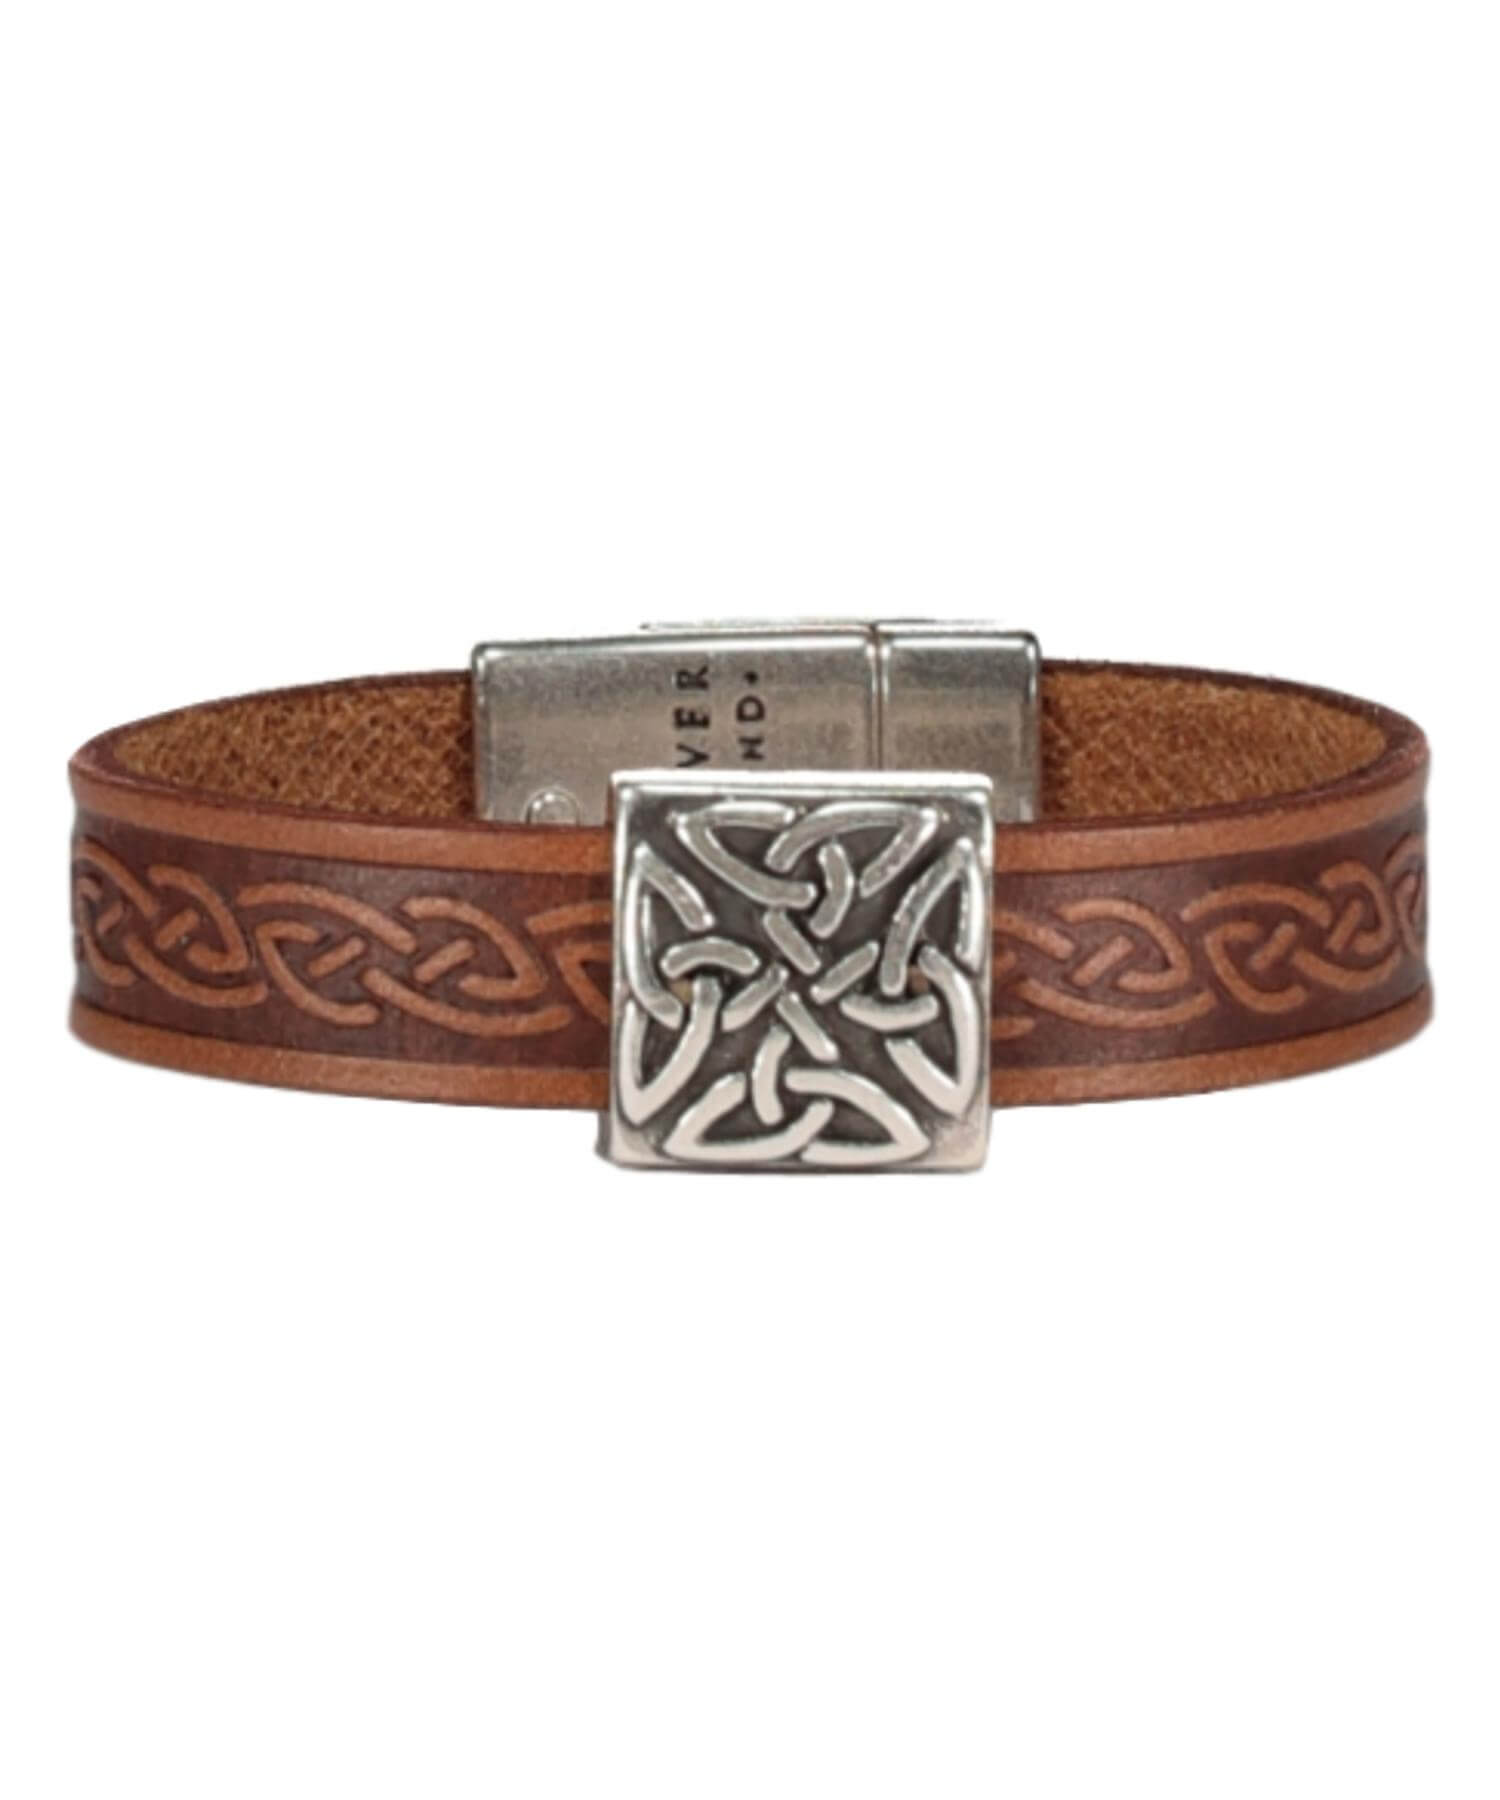 Braden Cuff - Brown - [Lee River] - Jewellery - Irish Gifts